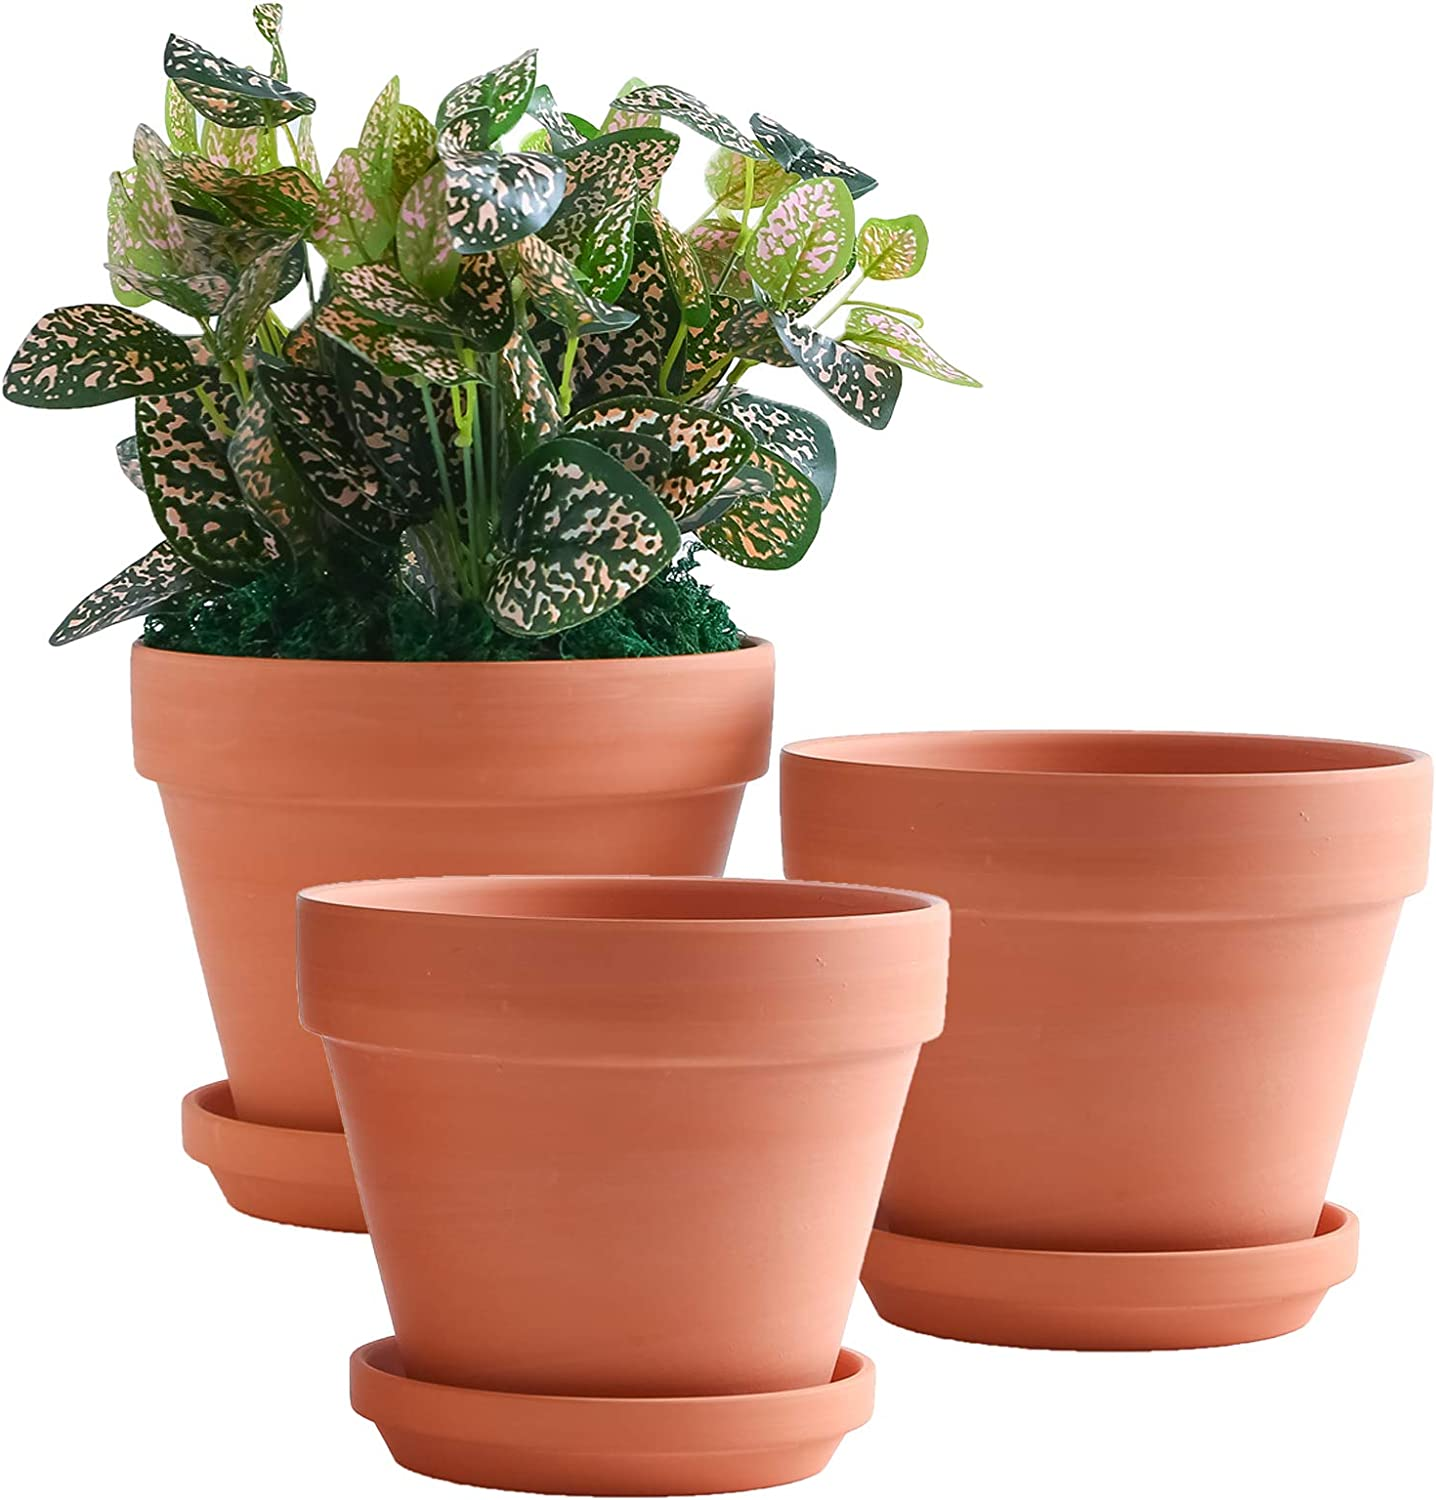 YISHANG 8 Inch Clay Pot for Plant with Saucer   8 Pack Large Terra Cotta  Plant Pot with Drainage Hole, Clay Planters Pot, Terracotta Pot for Indoor  ...